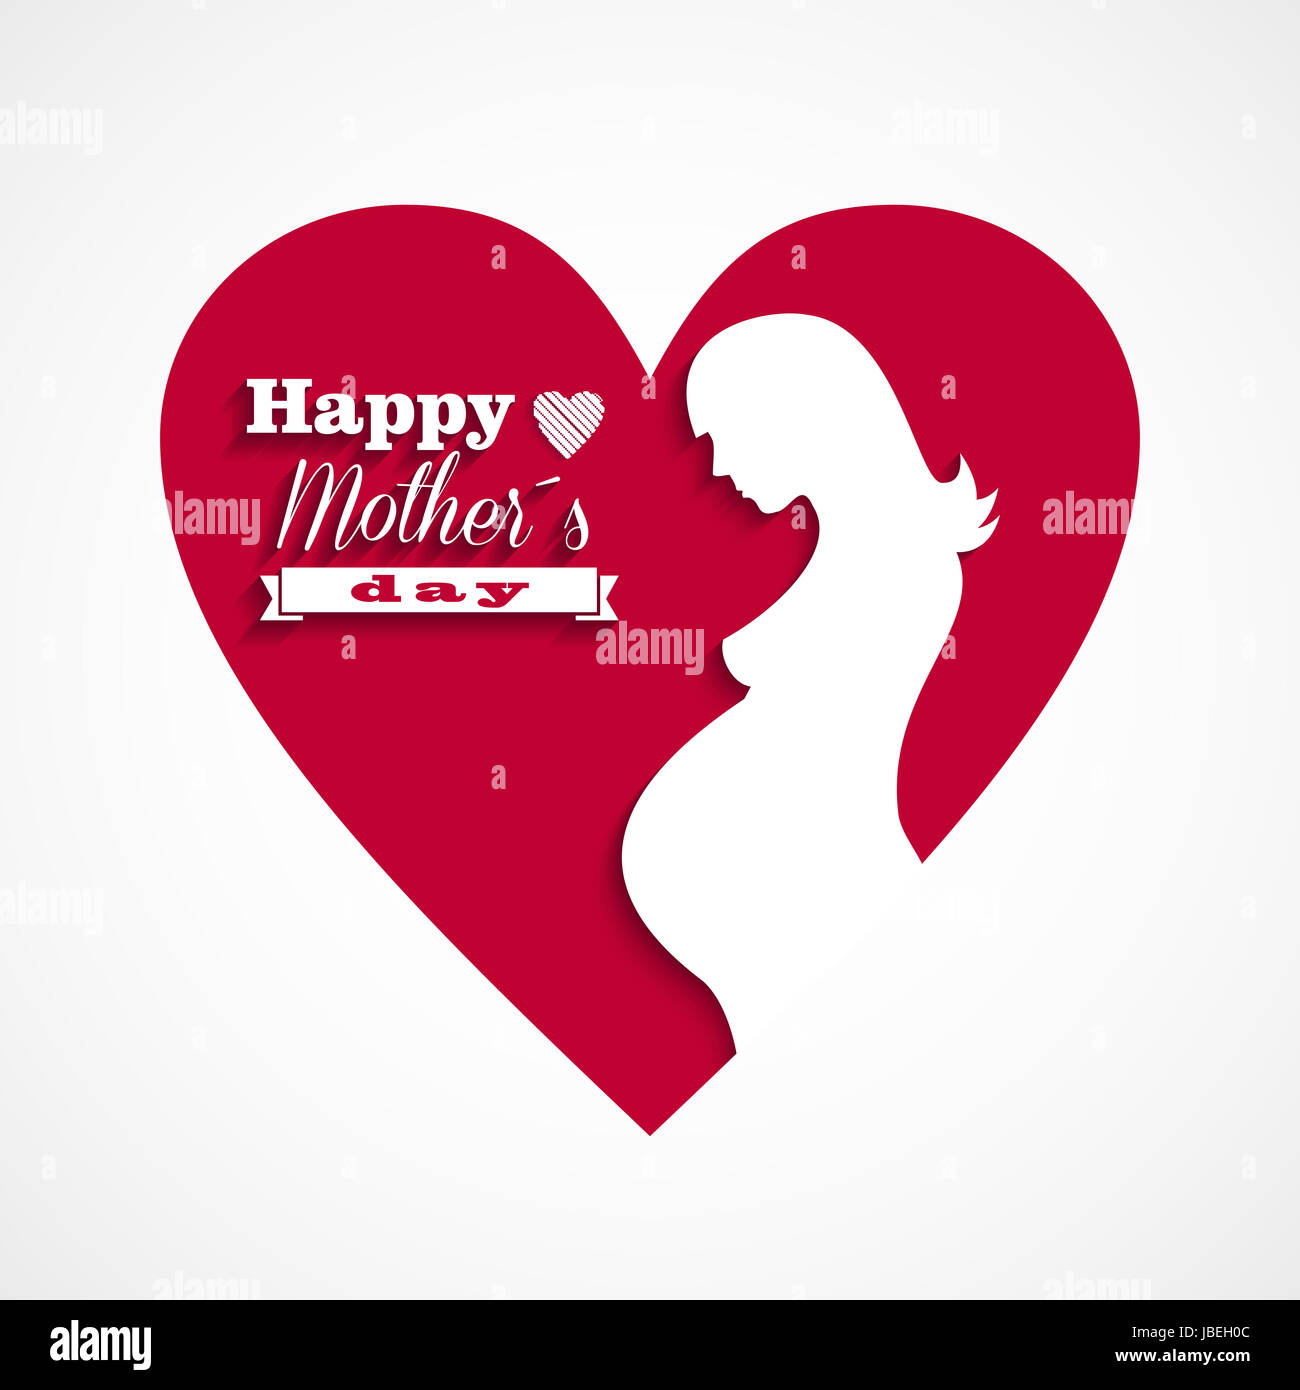 Pregnant Happy Mothers Day Greeting Card With Love Heart And Text